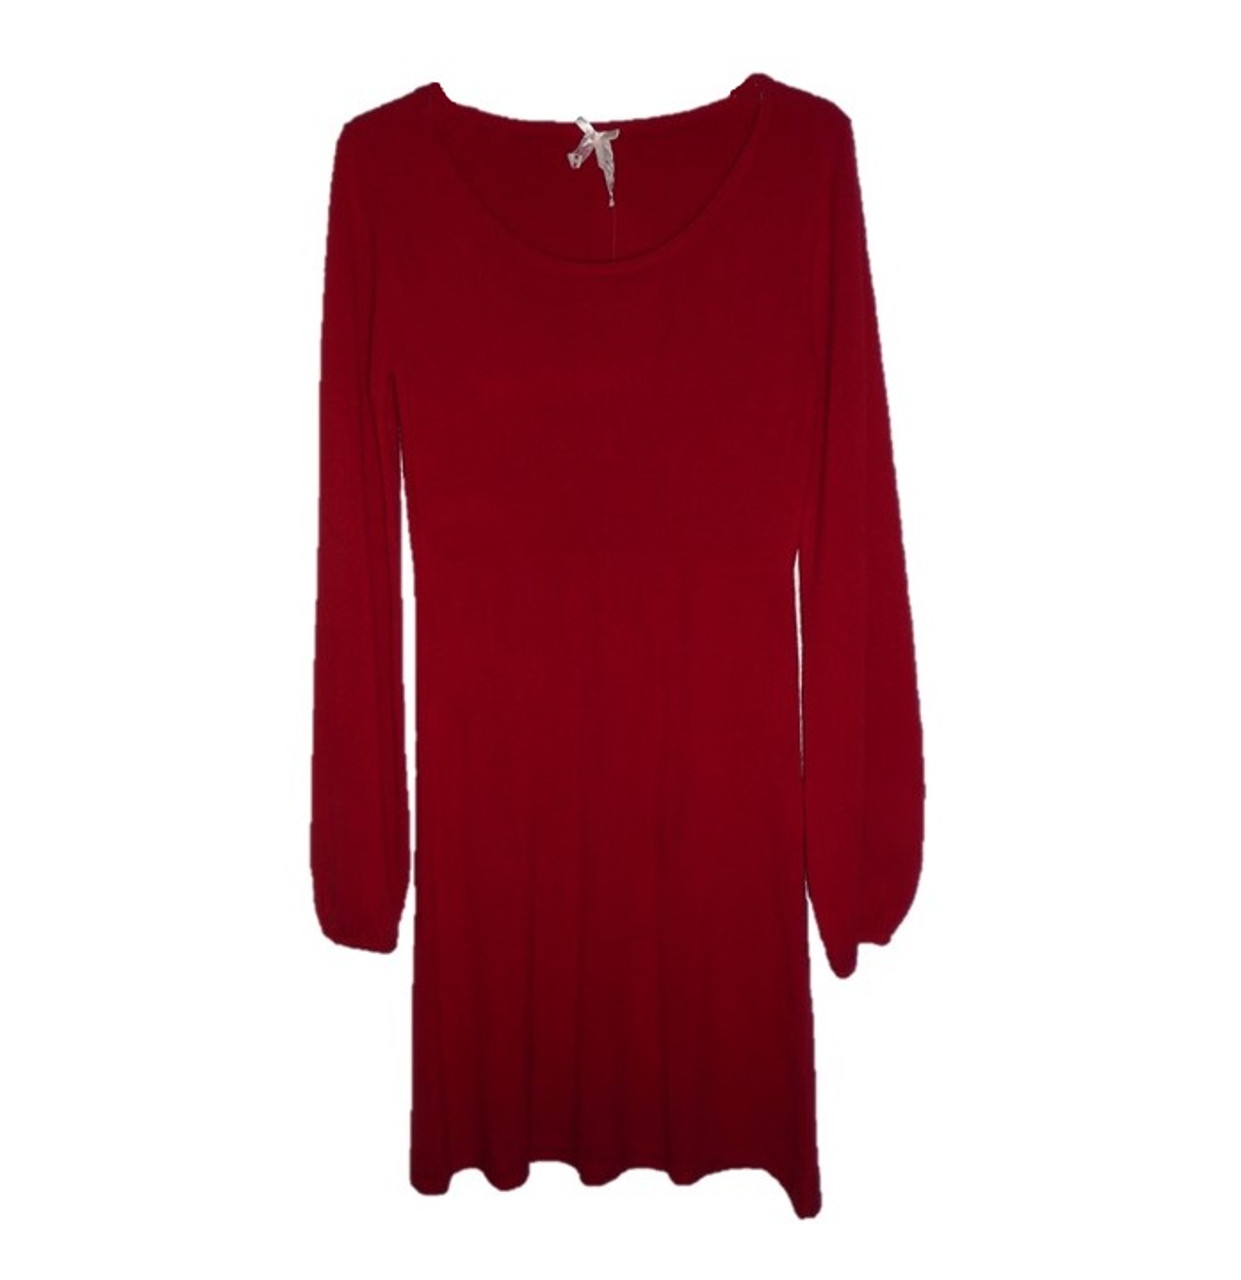 67dcd05d213b Women Red Dress Derek Heart. Women Red Dress Derek Heart  Women s Knit Long  Sleeve Sweater ...